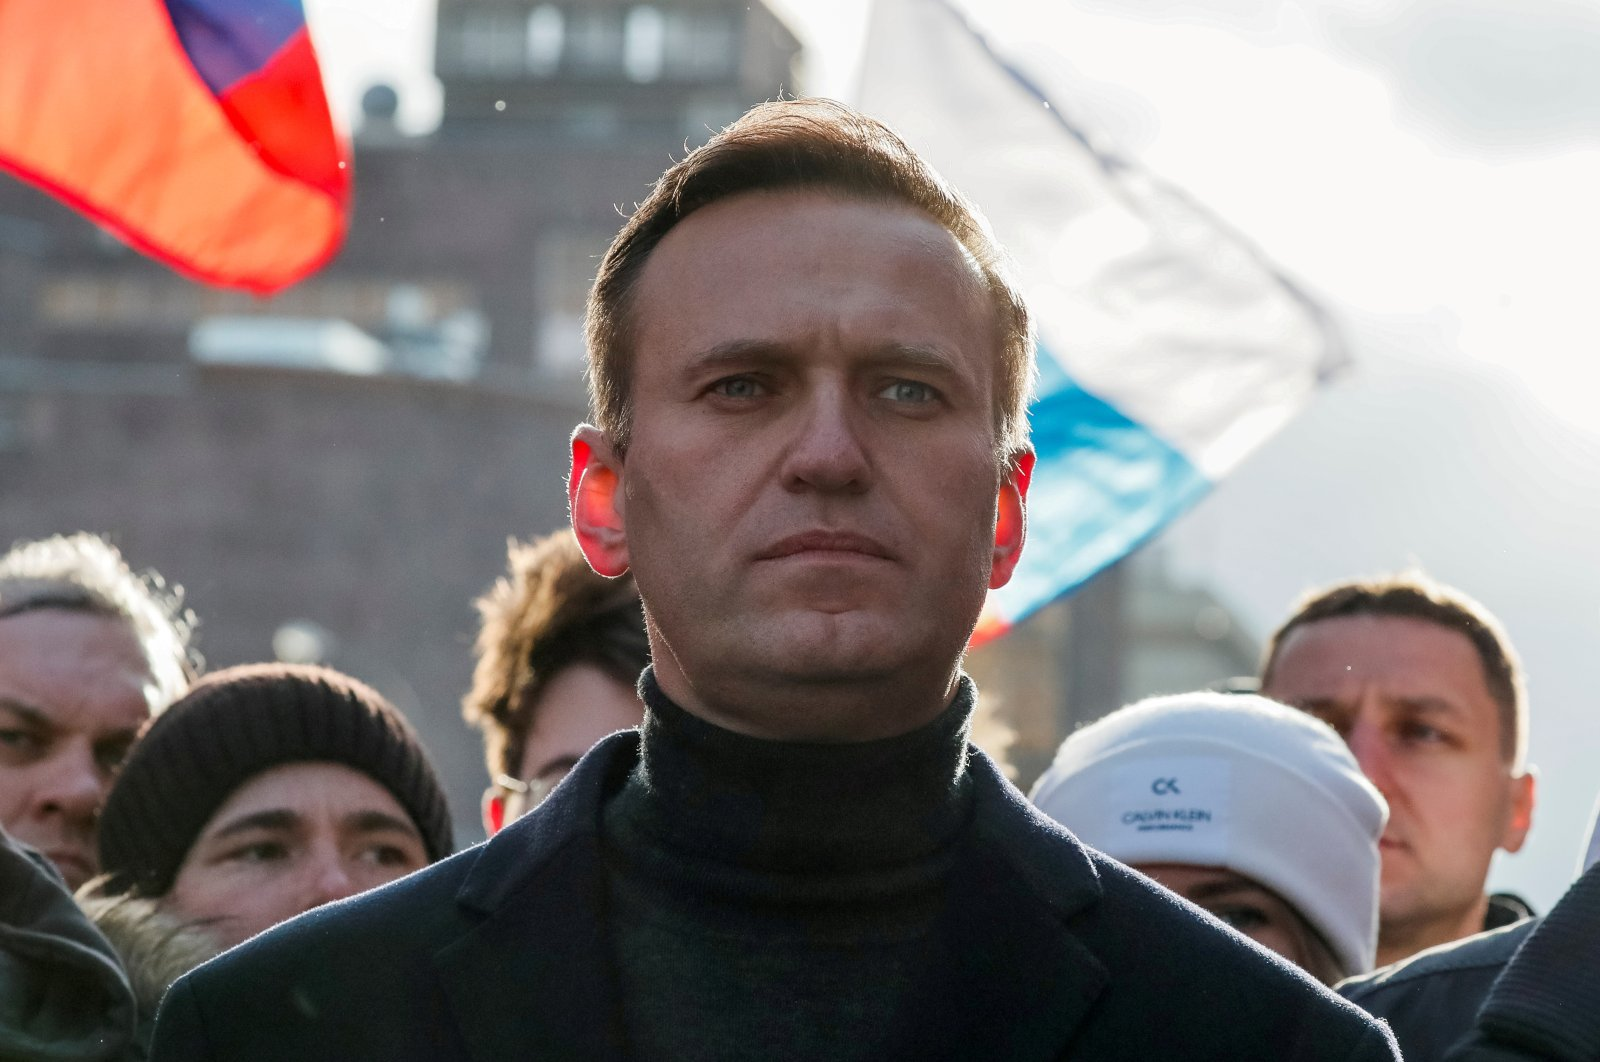 Russian opposition politician Alexei Navalny takes part in a rally in Moscow, Russia, Feb. 29, 2020. (Reuters)